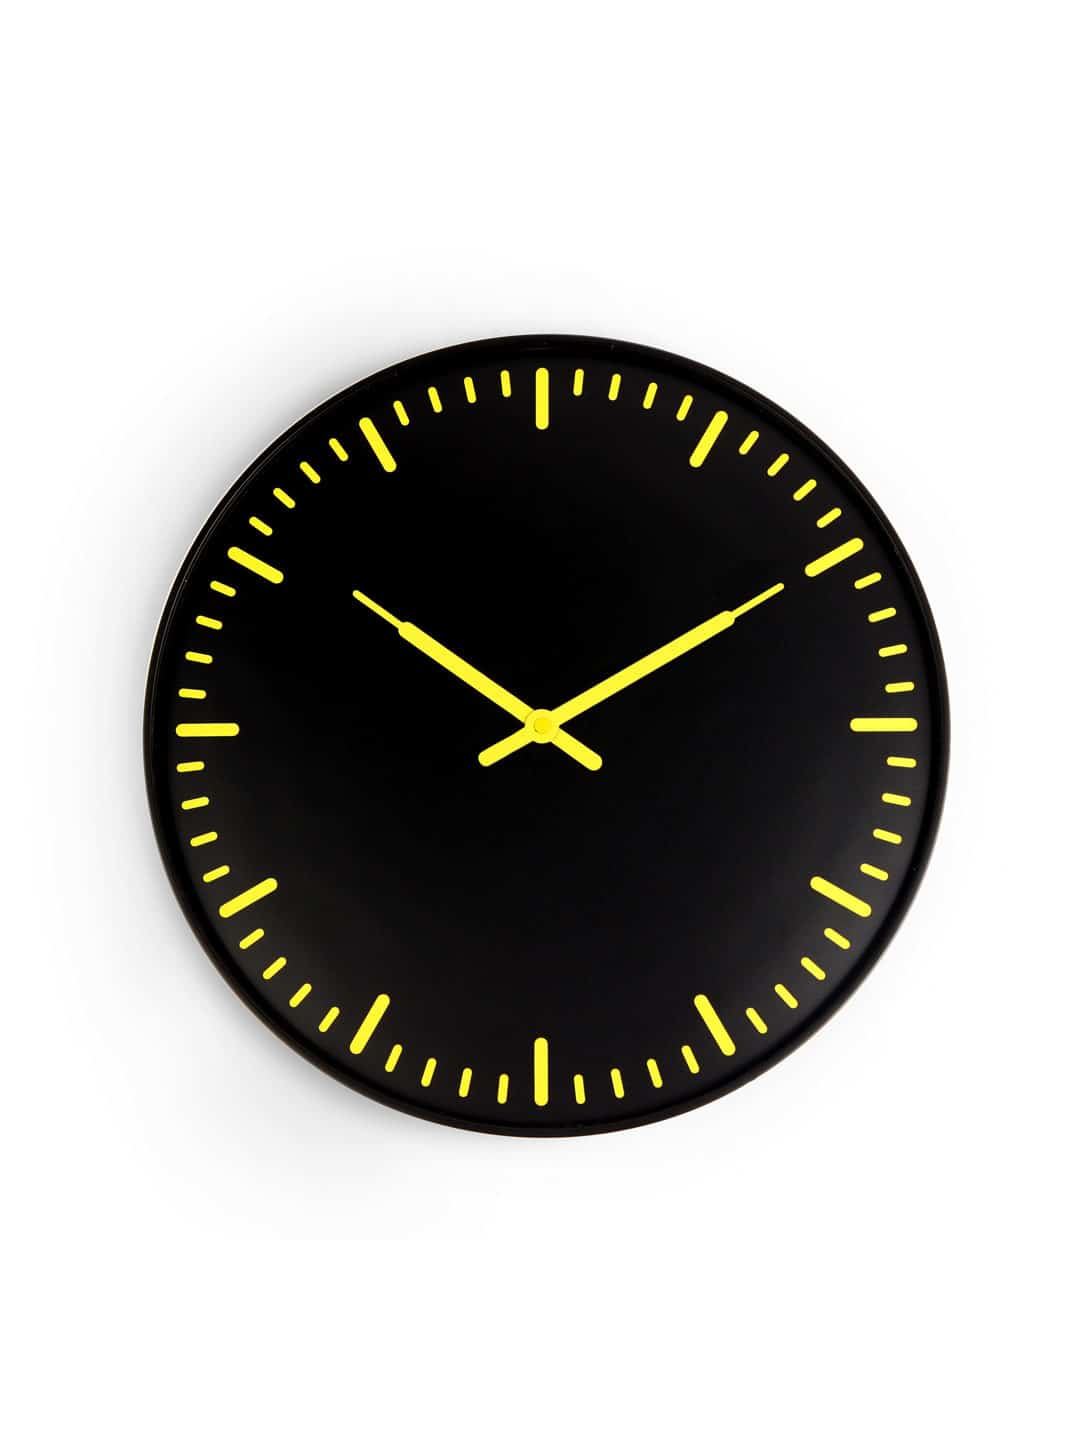 Kikkerland Swiss Station Ultra Flat Wall Clock Black Simple Design